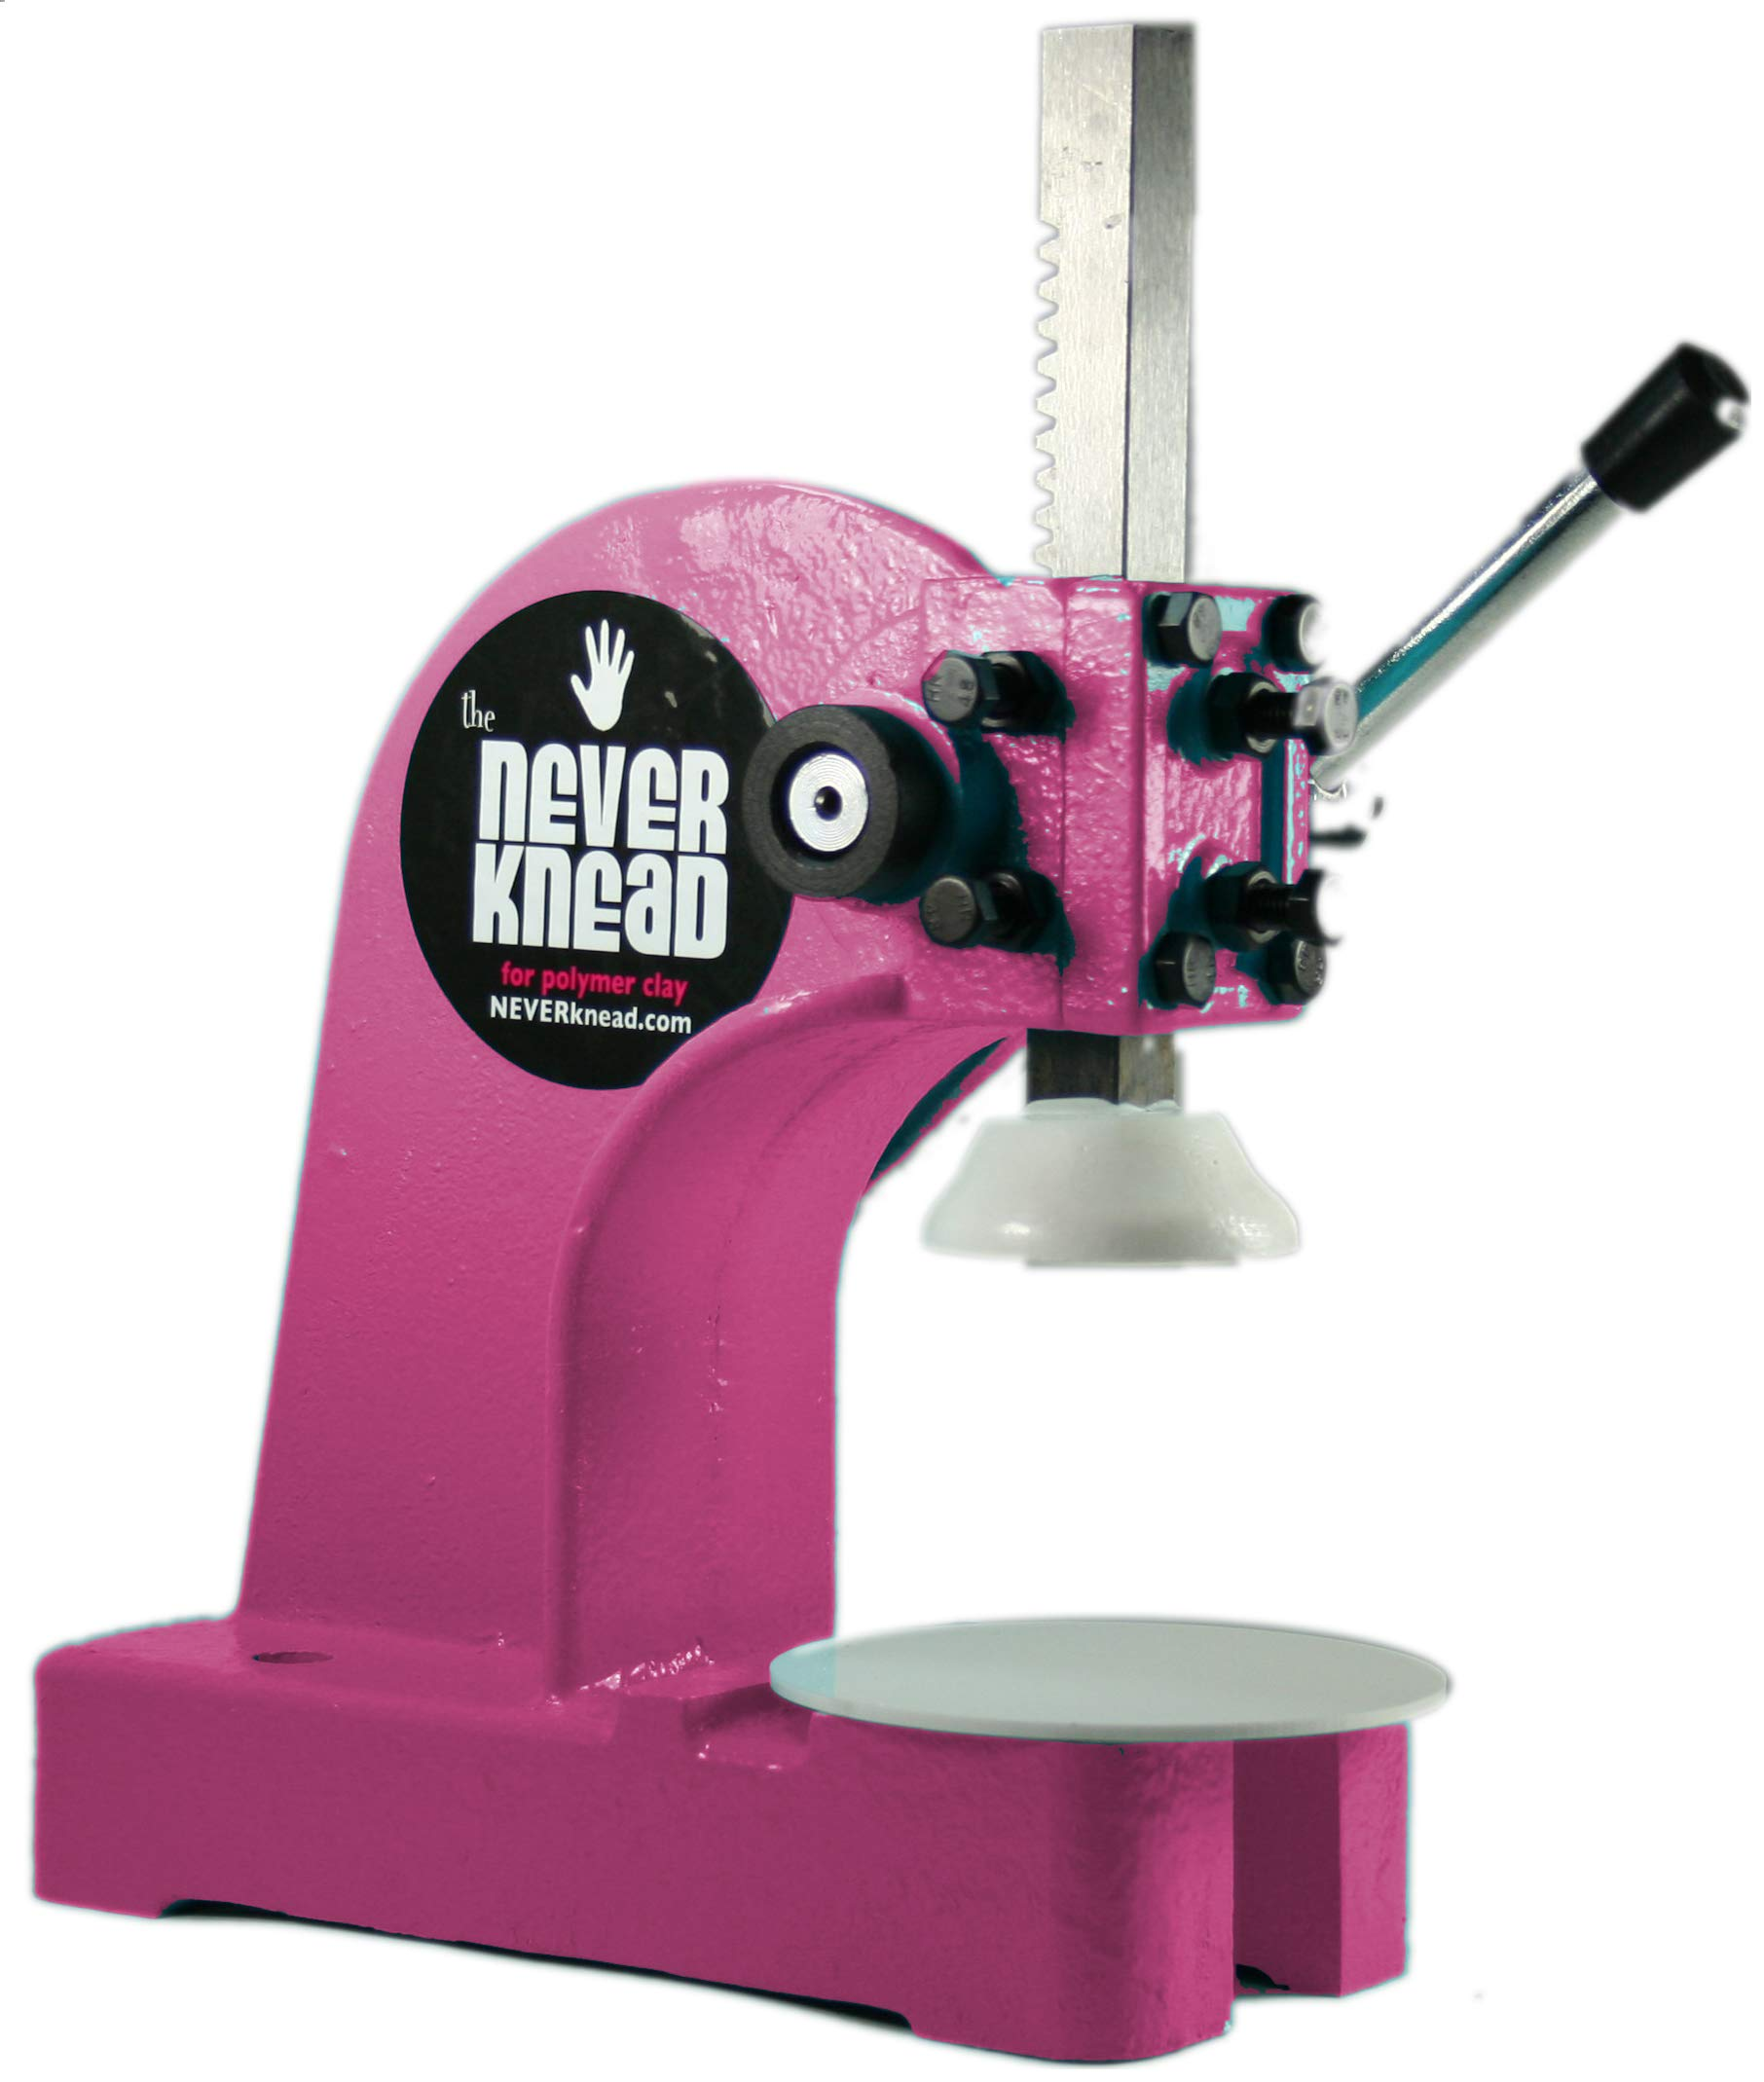 Hot Pink NEVERknead Polymer Clay Kneader Tool NEW - a Revolution in Clay Production for Artists - works with Sculpey Fimo & More EASY!